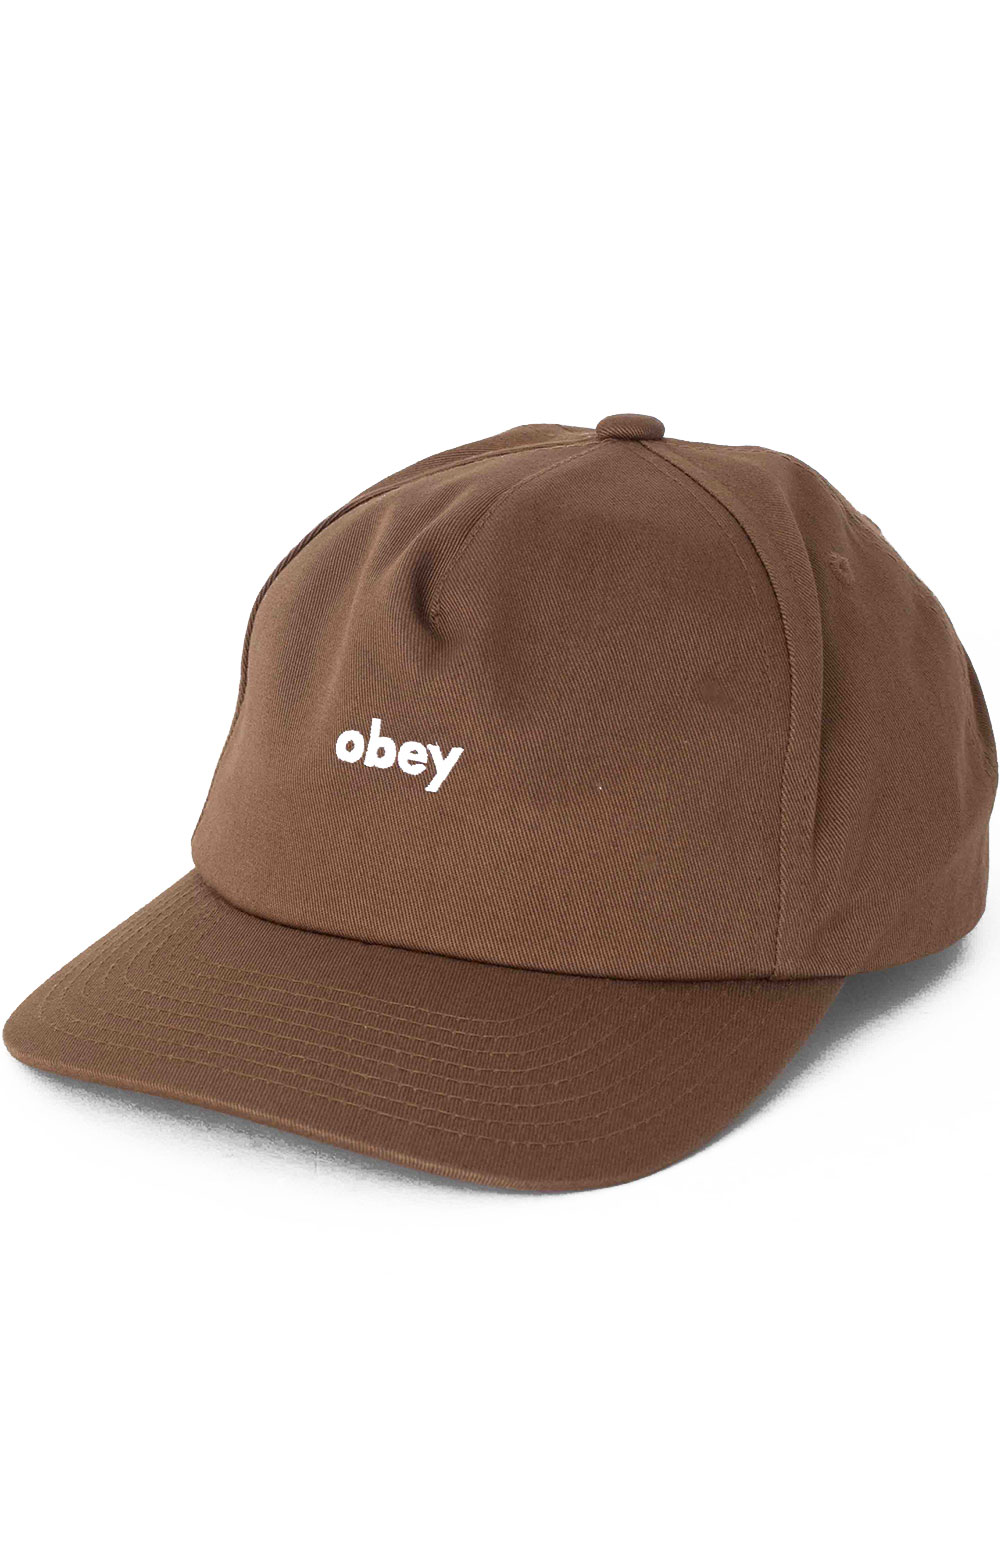 Lowercase Snap-Back Hat - Brown